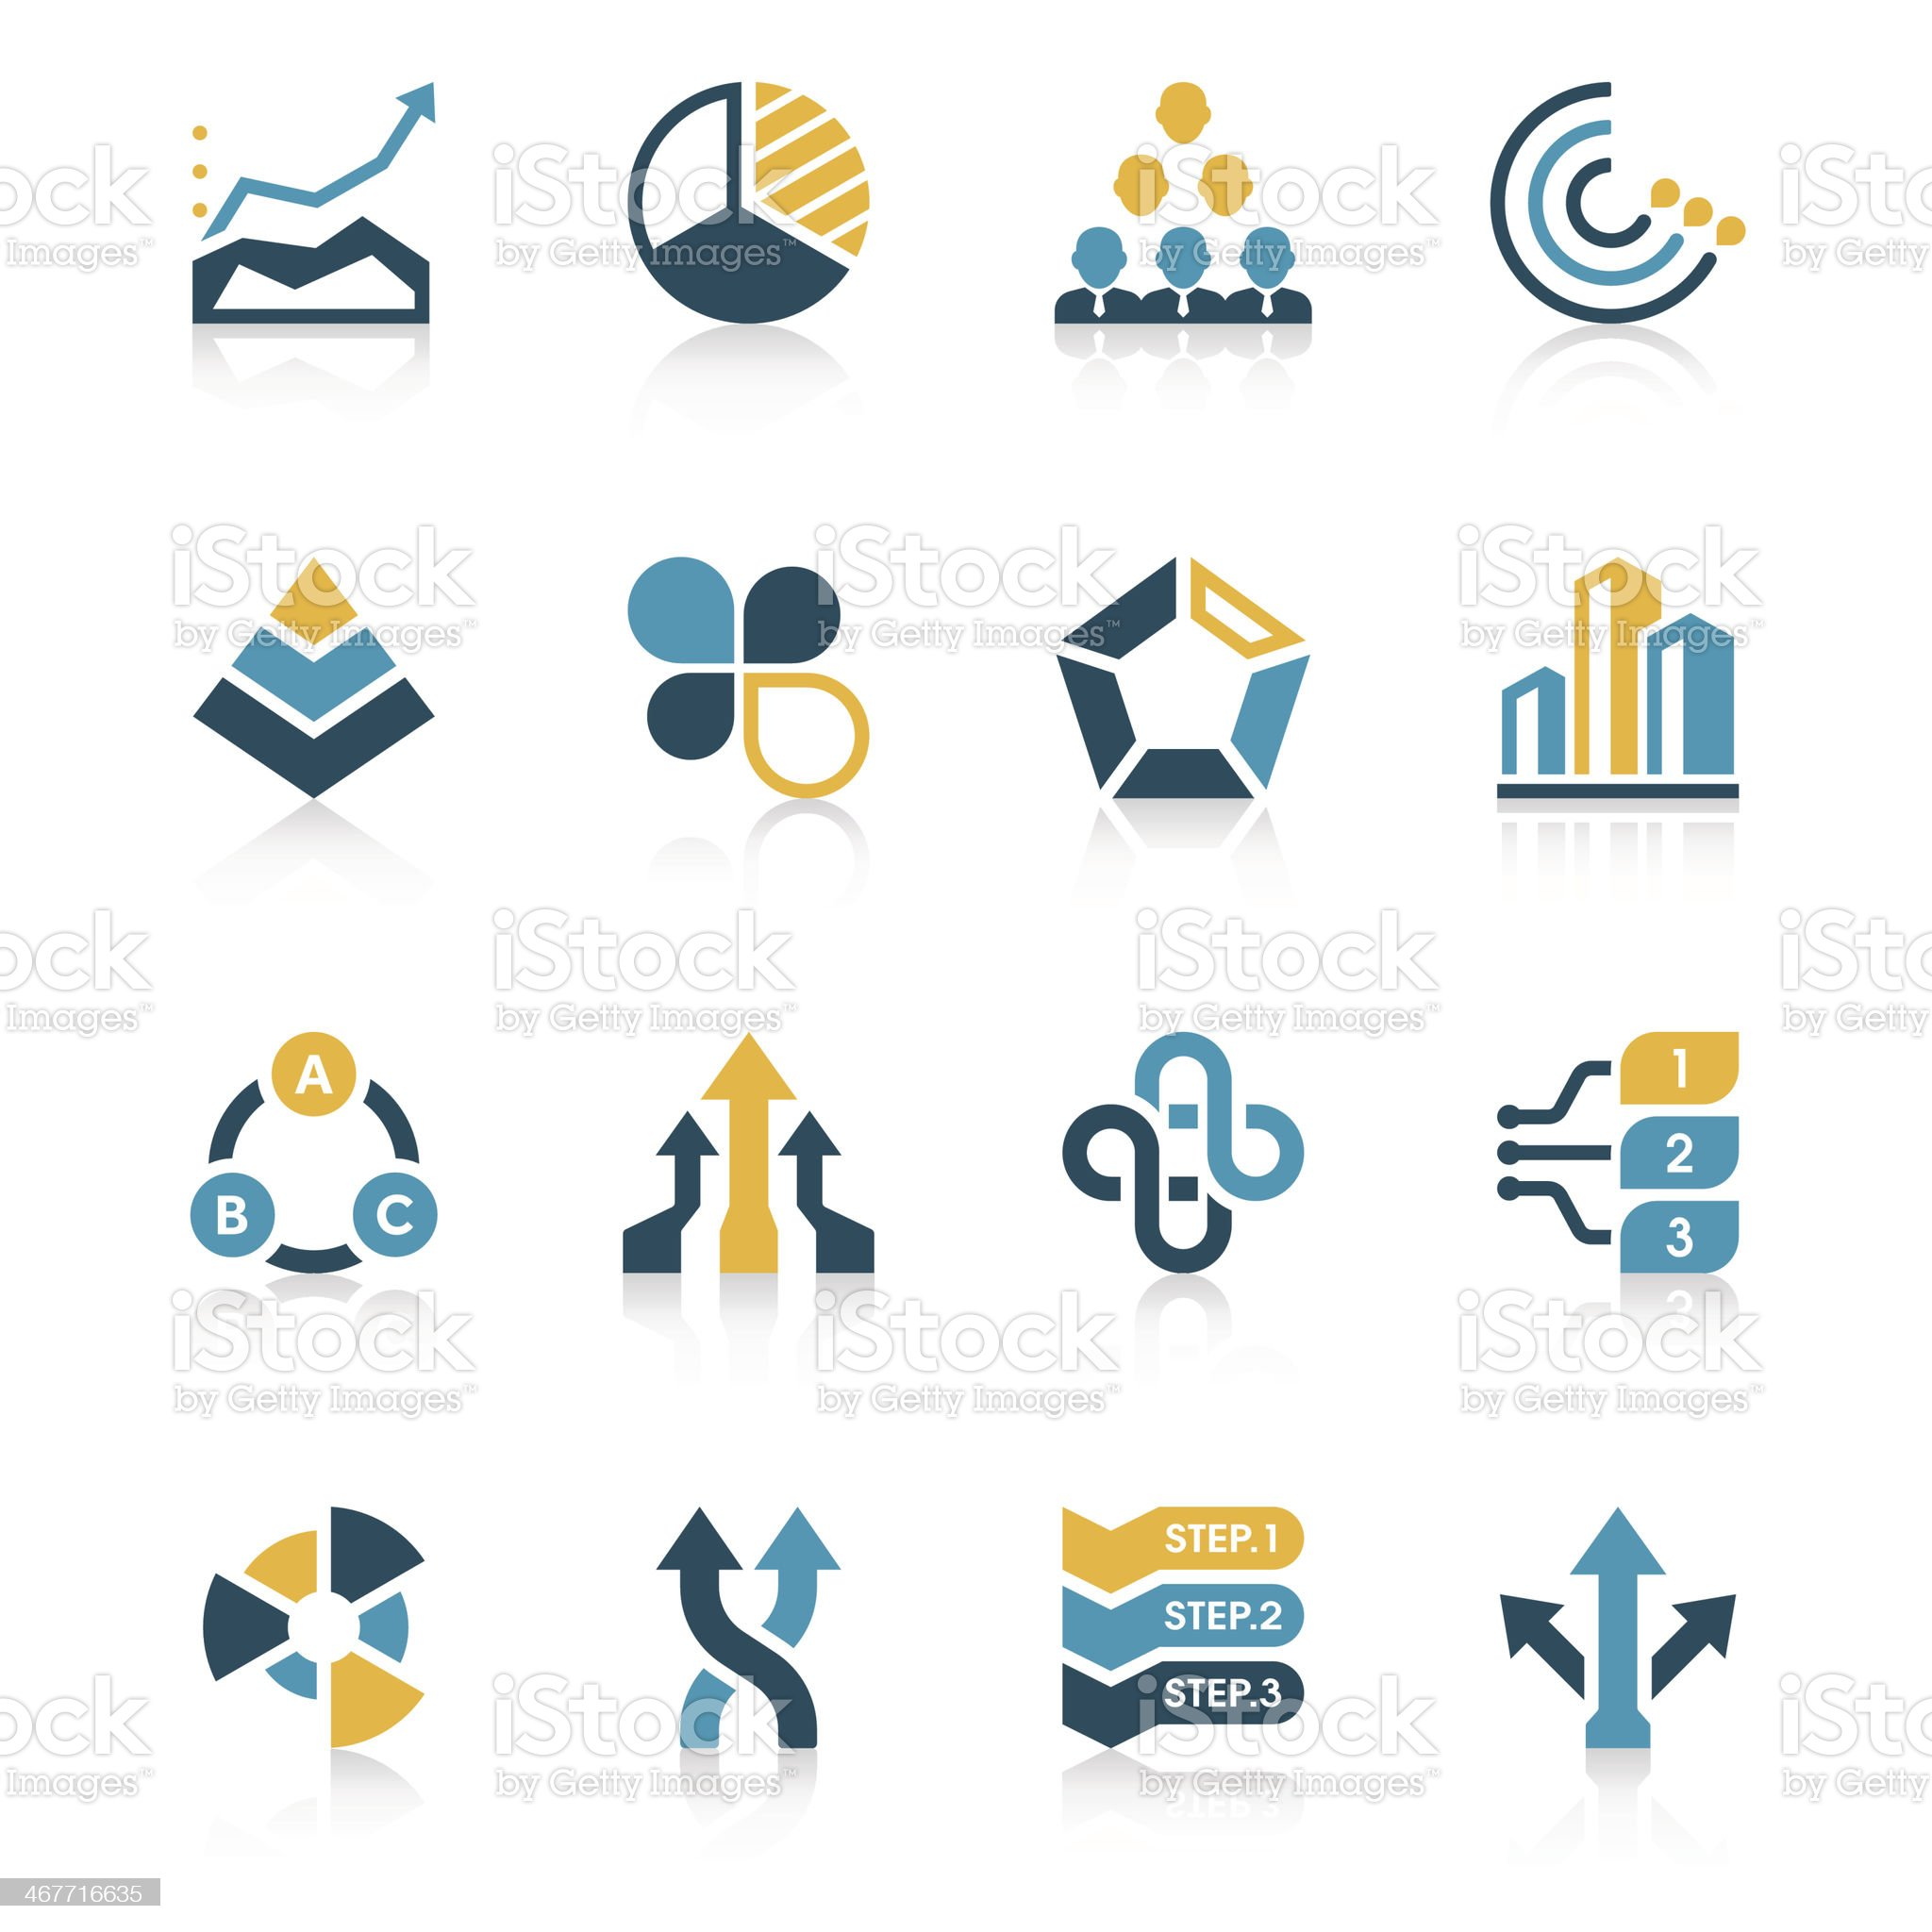 Business Chart Icon Set | Vivid Series royalty-free stock vector art